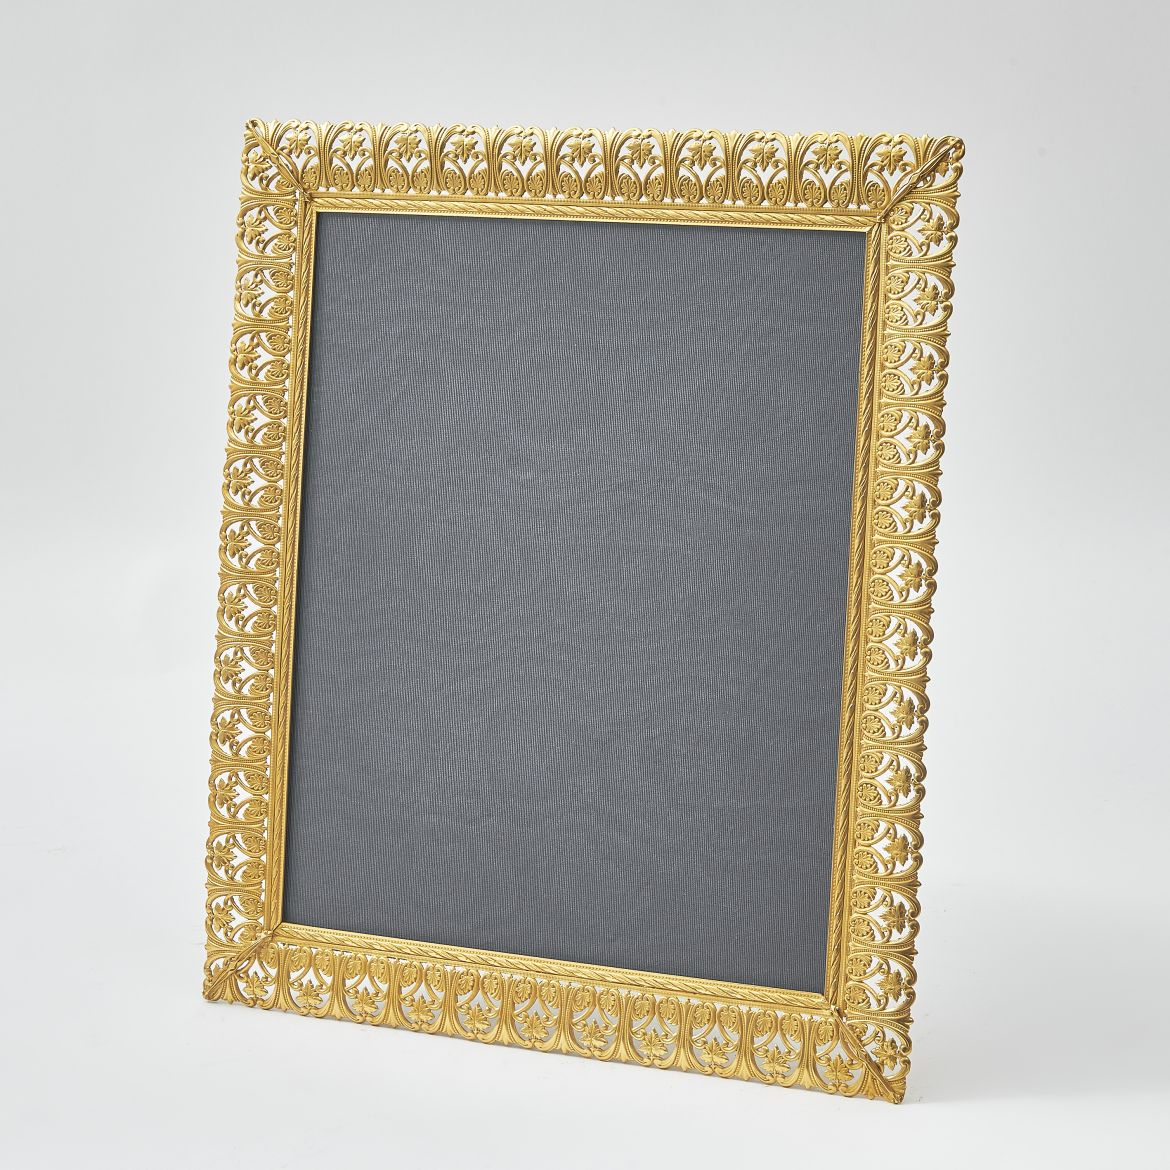 French Frame With Foliate Open Work Border